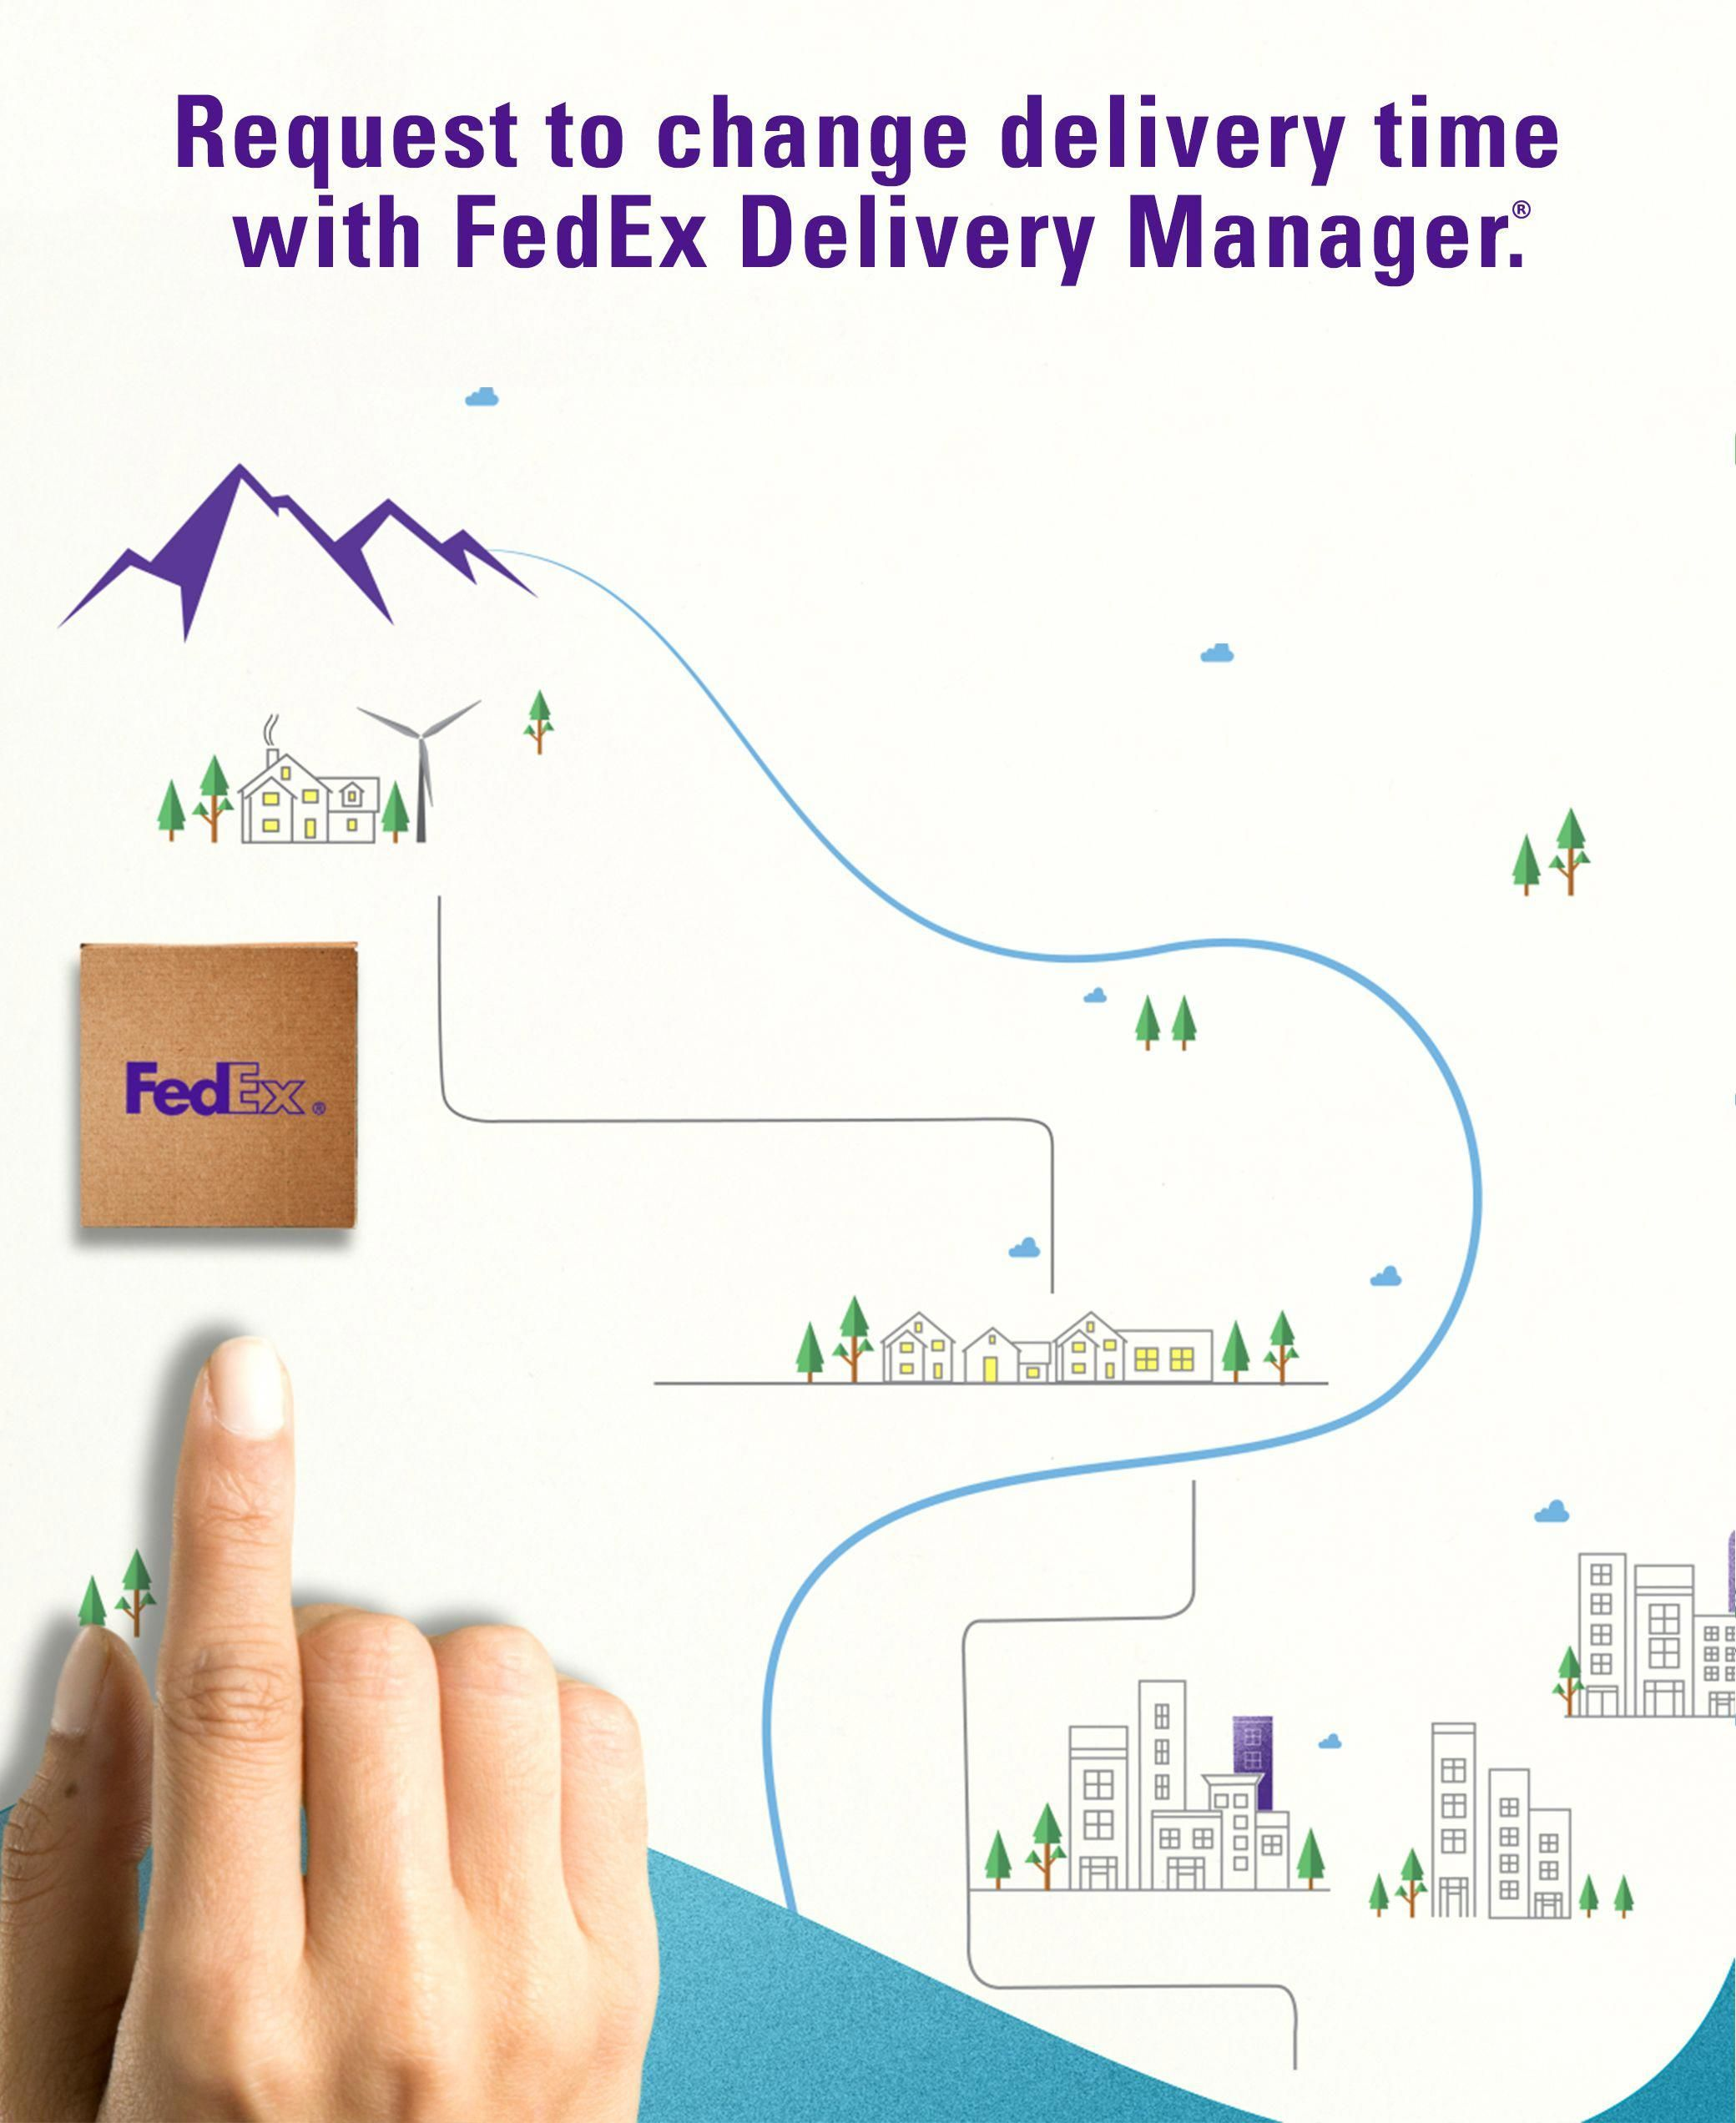 Not at home for your package? No problem. FedEx Delivery